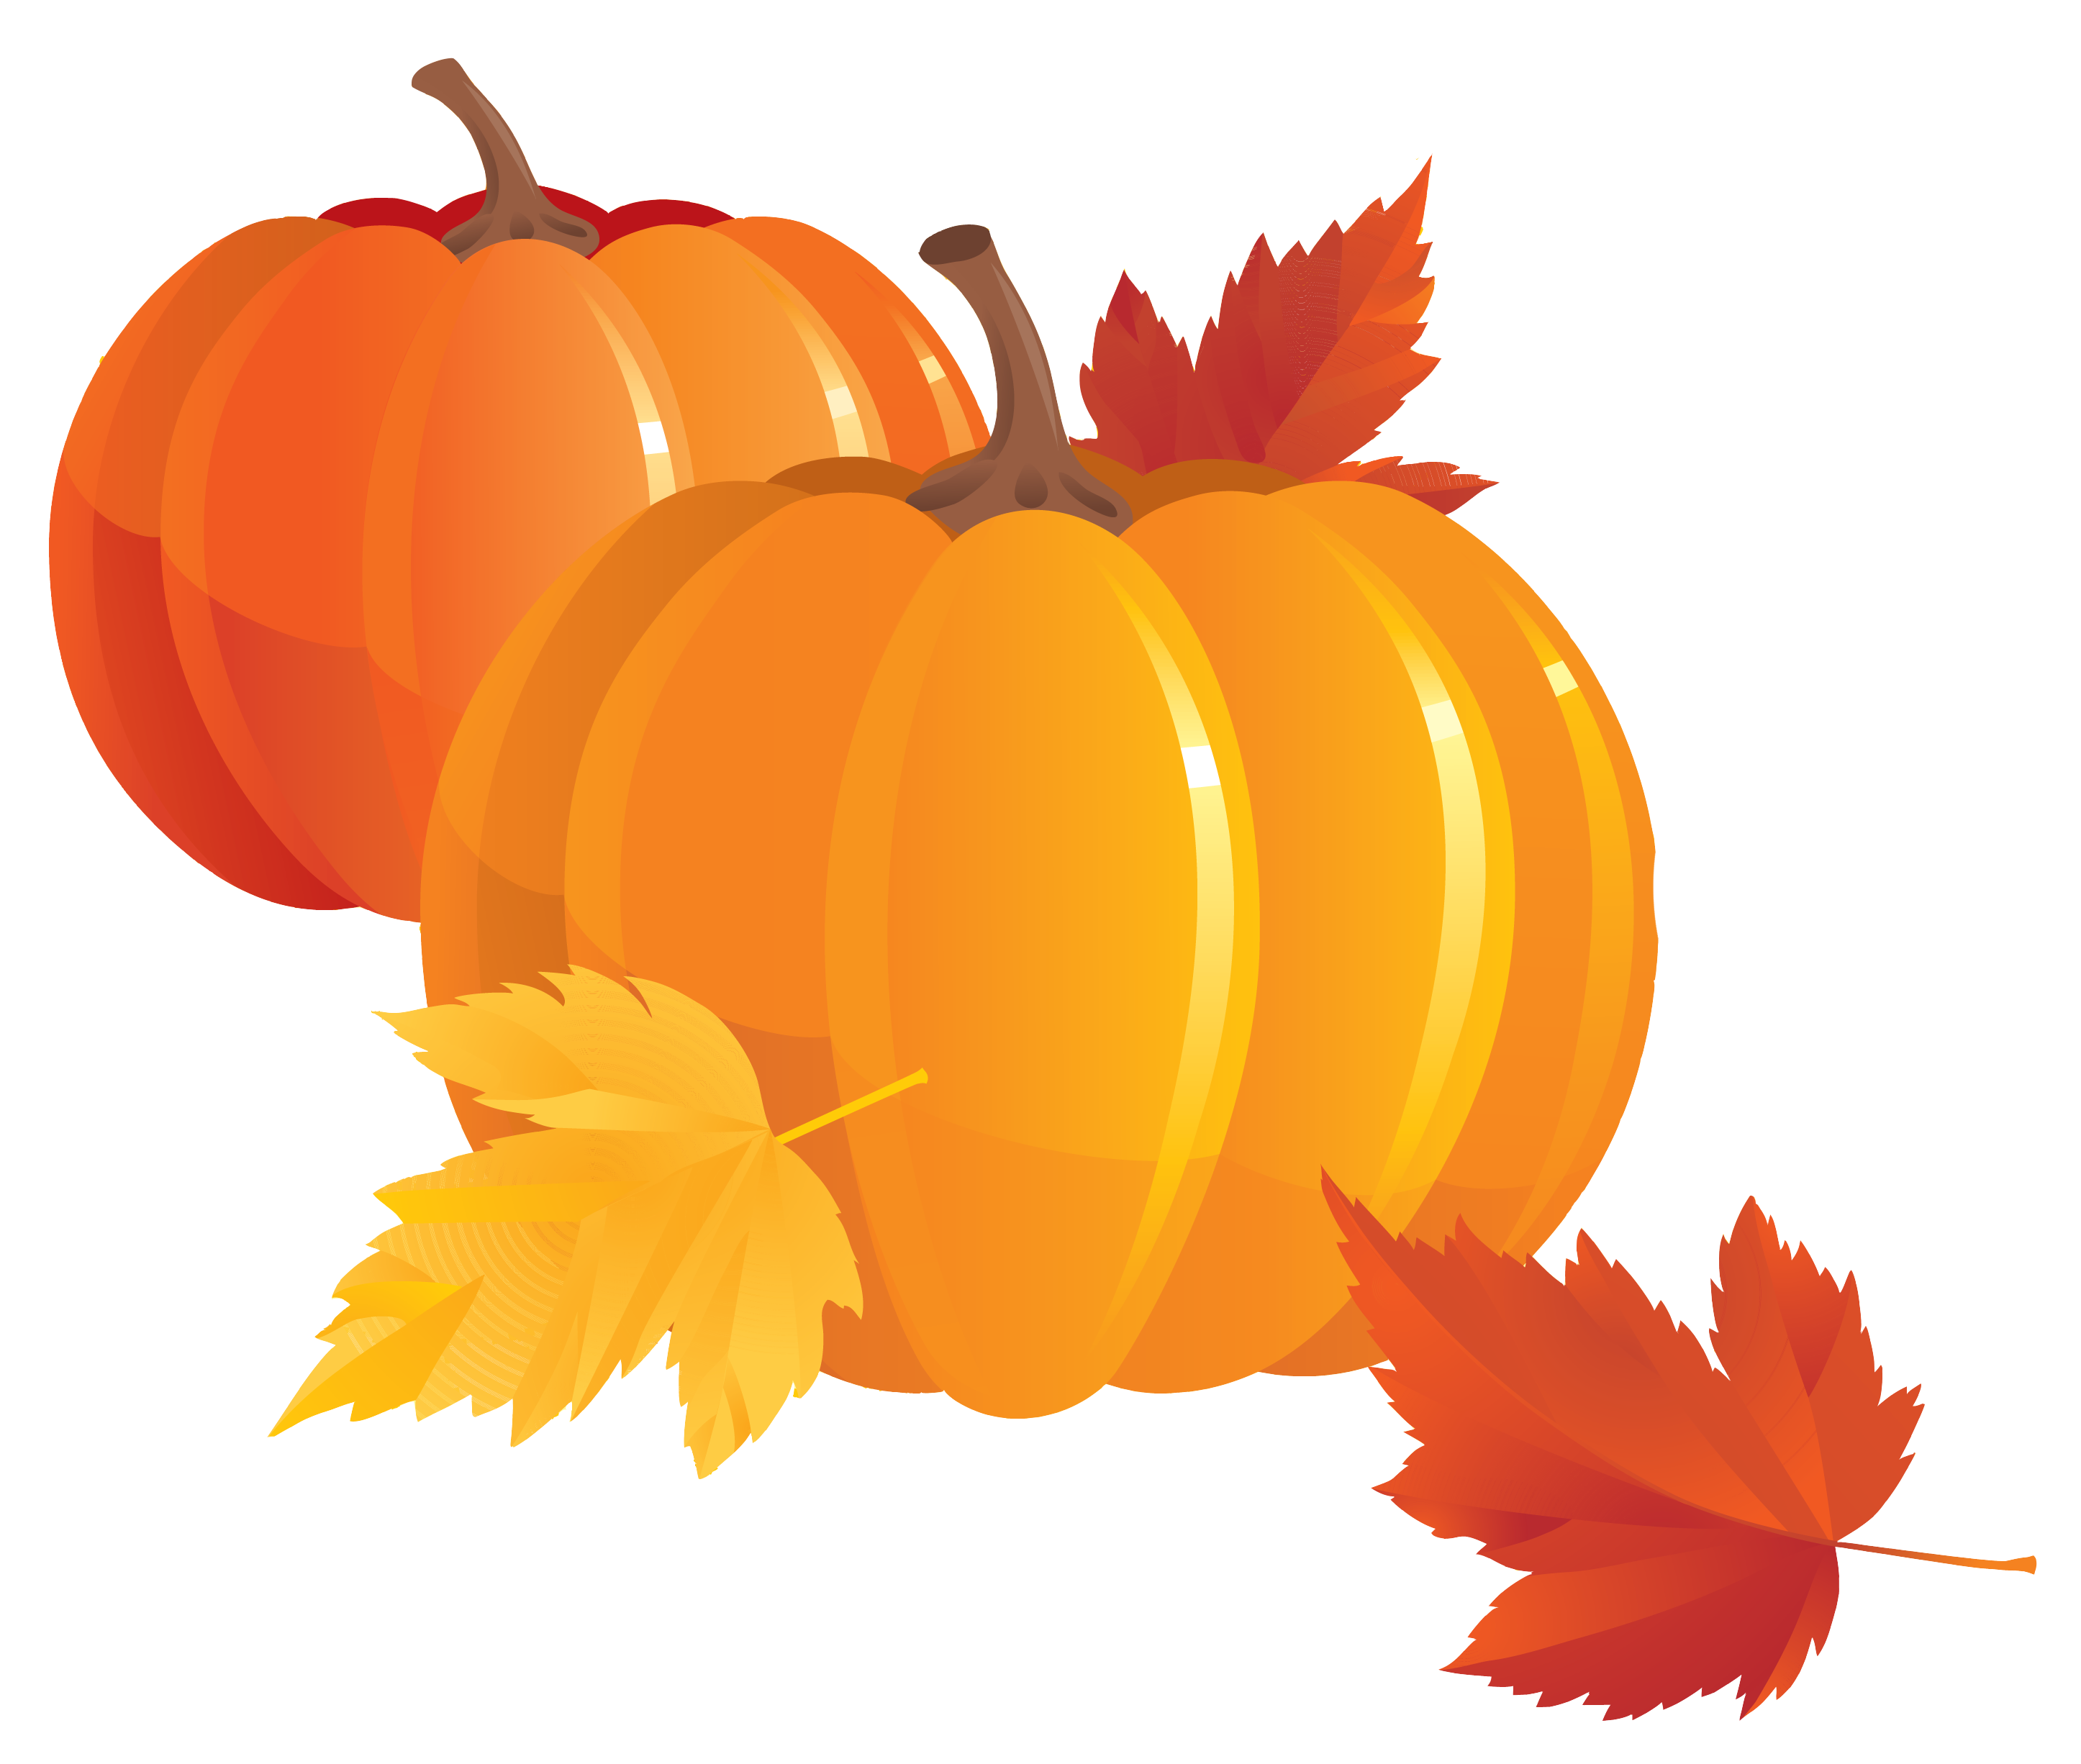 Pumpkin png clipart. Images free download image